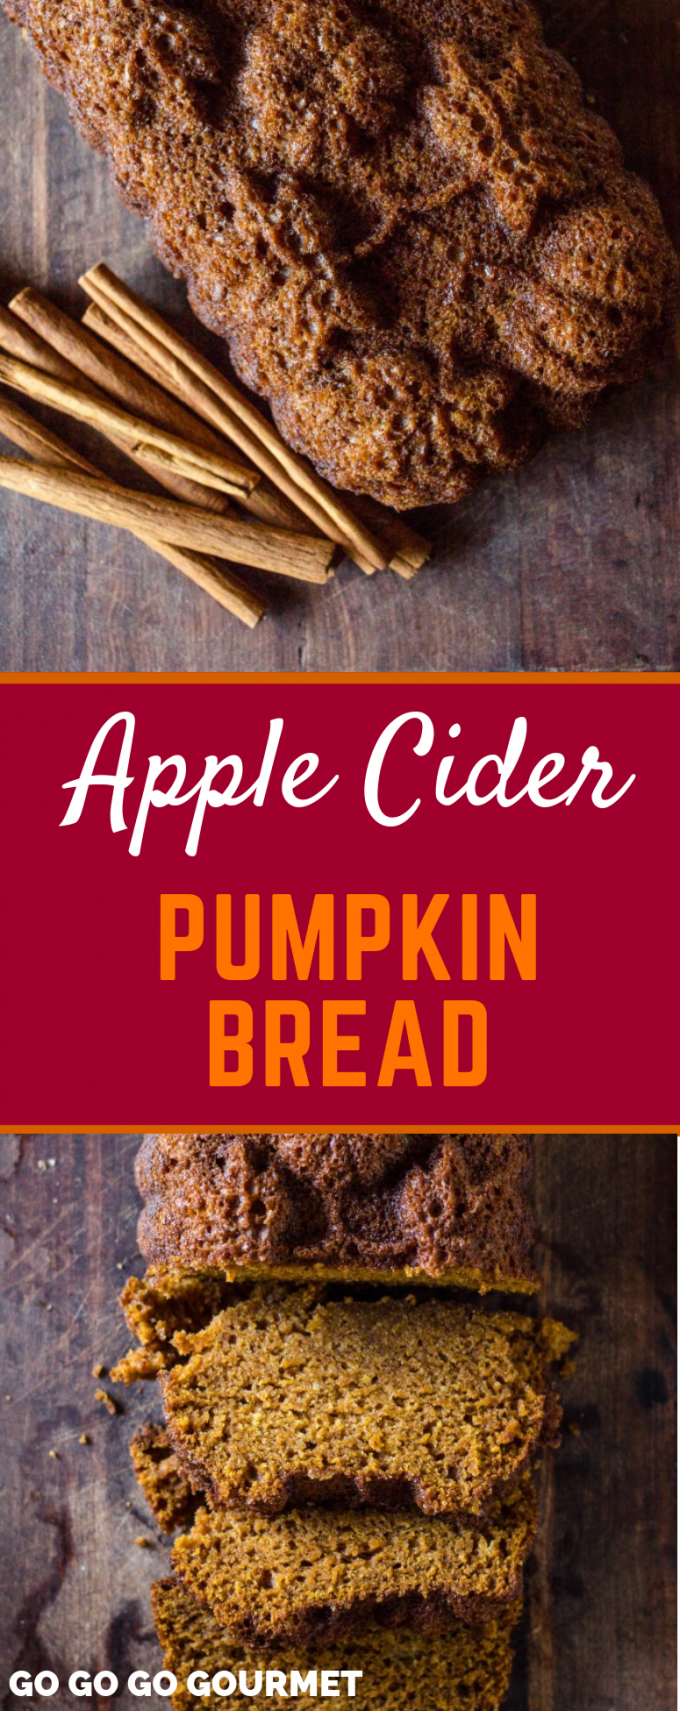 If you're looking for fall recipes and desserts, this is the one for you! This is the best Apple Cider Pumpkin Bread! Easy to make and super moist, this pumpkin bread is full of delicious fall flavors. #gogogogourmet #appleciderpumpkinbread #pumpkinrecipes #applerecipes